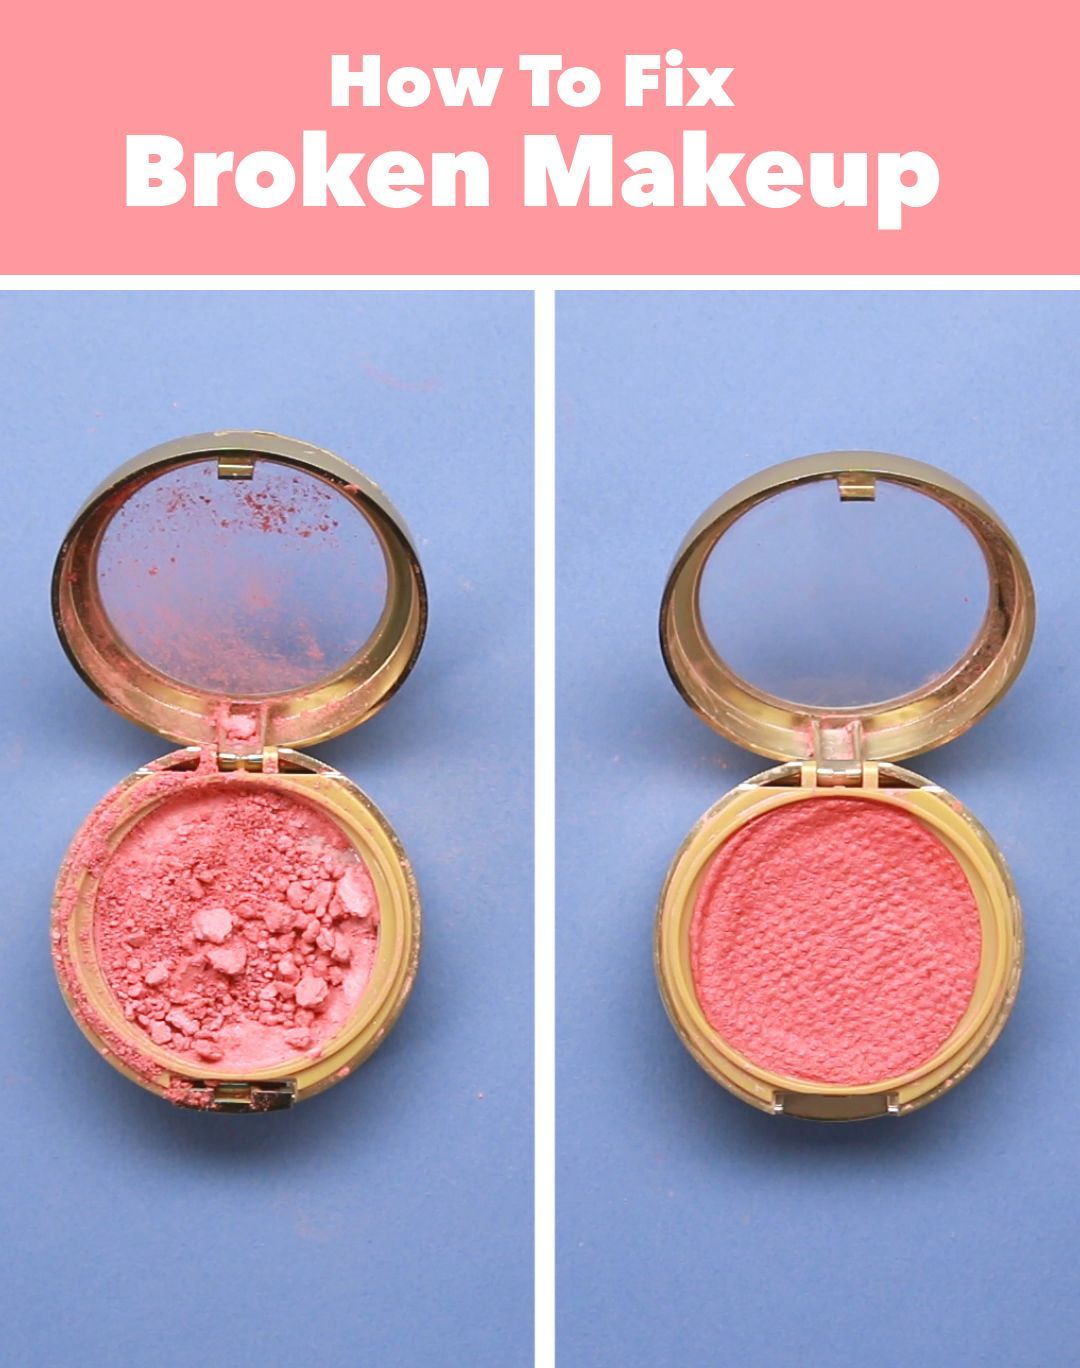 Fix broken powder, bronzer, or eyeshadow with this clever